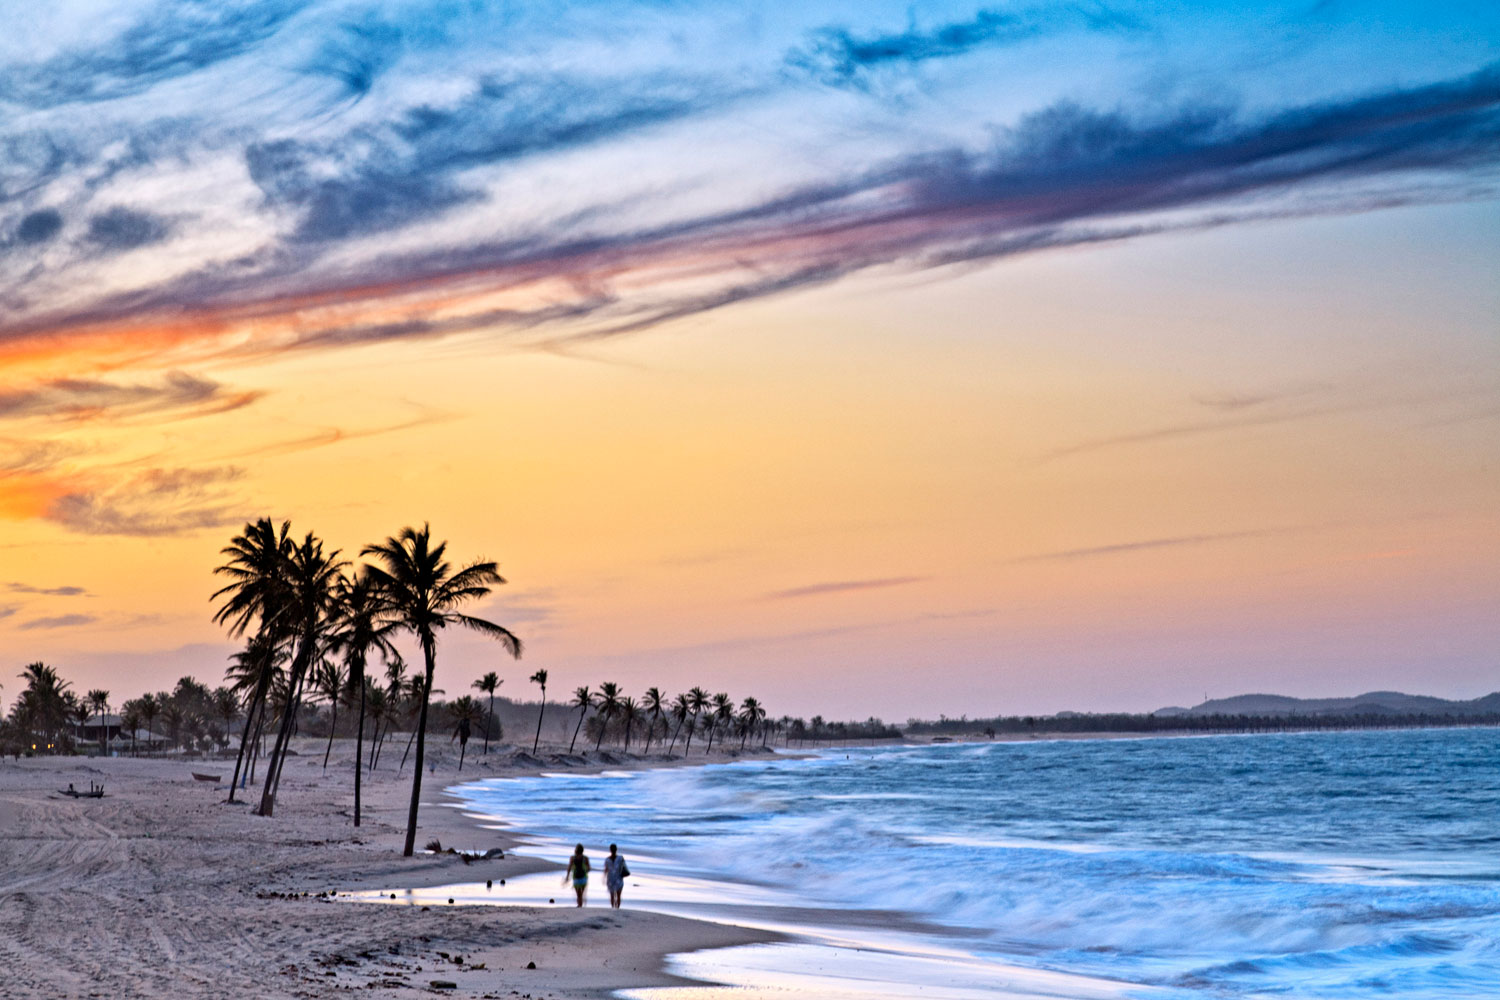 The Cucumbo beaches line the state of Ceara's coast, popular amongst kite- and wind- surfers, and known for its fines and and palm tree-lined shores.